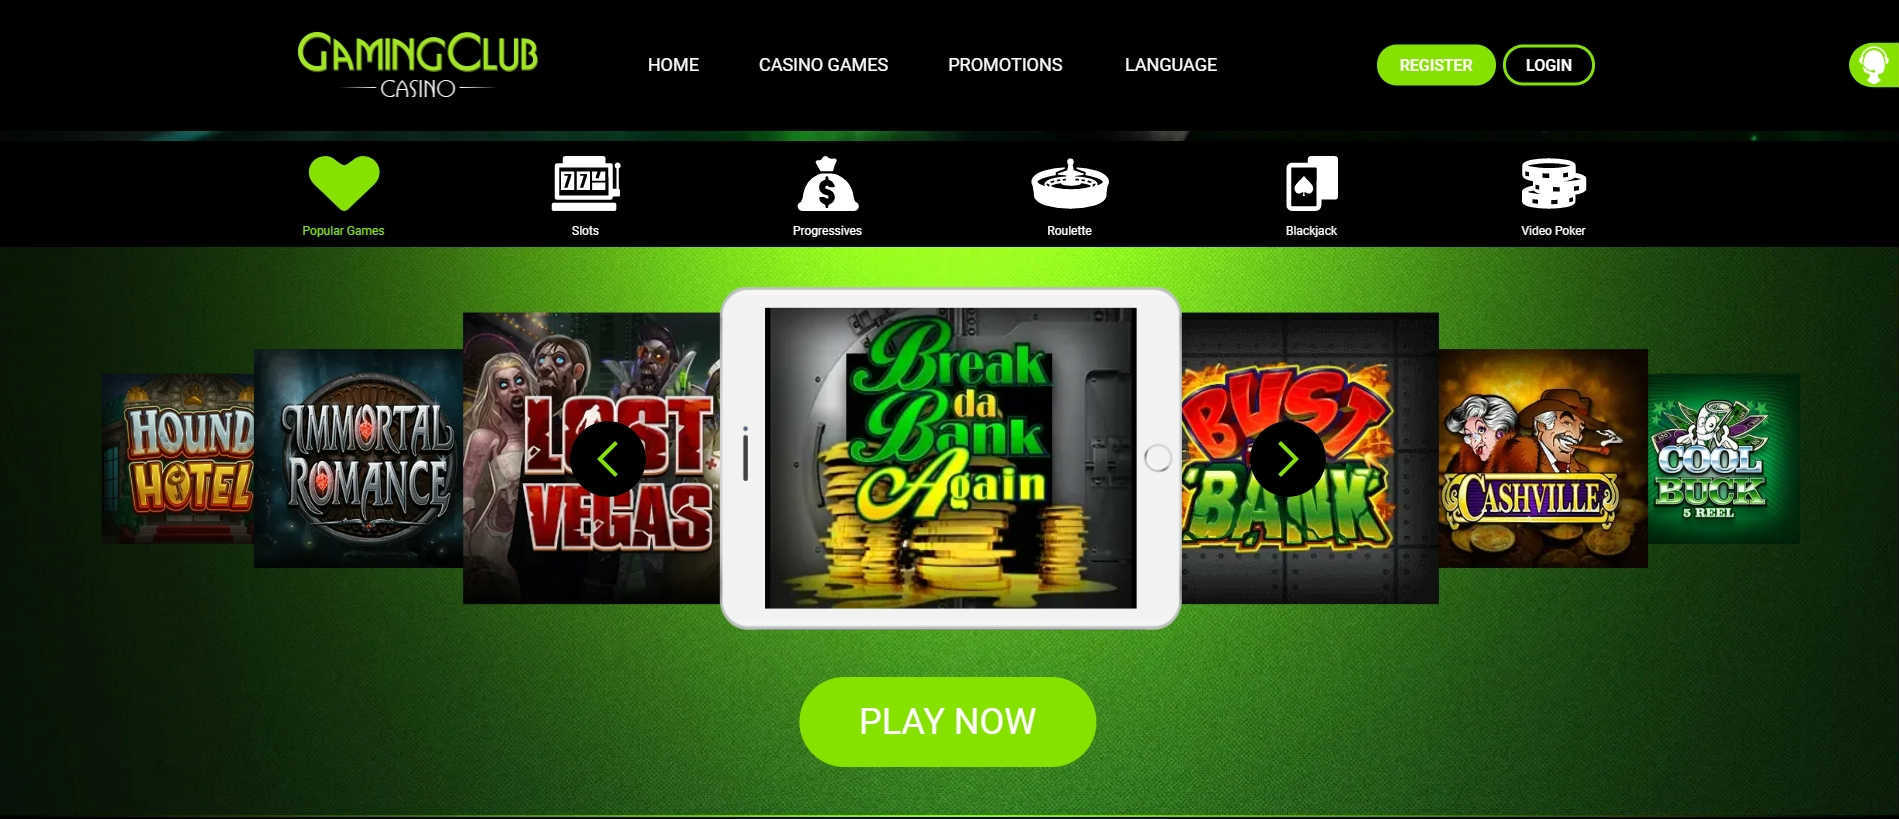 Gaming Club Casino Online Casino Games